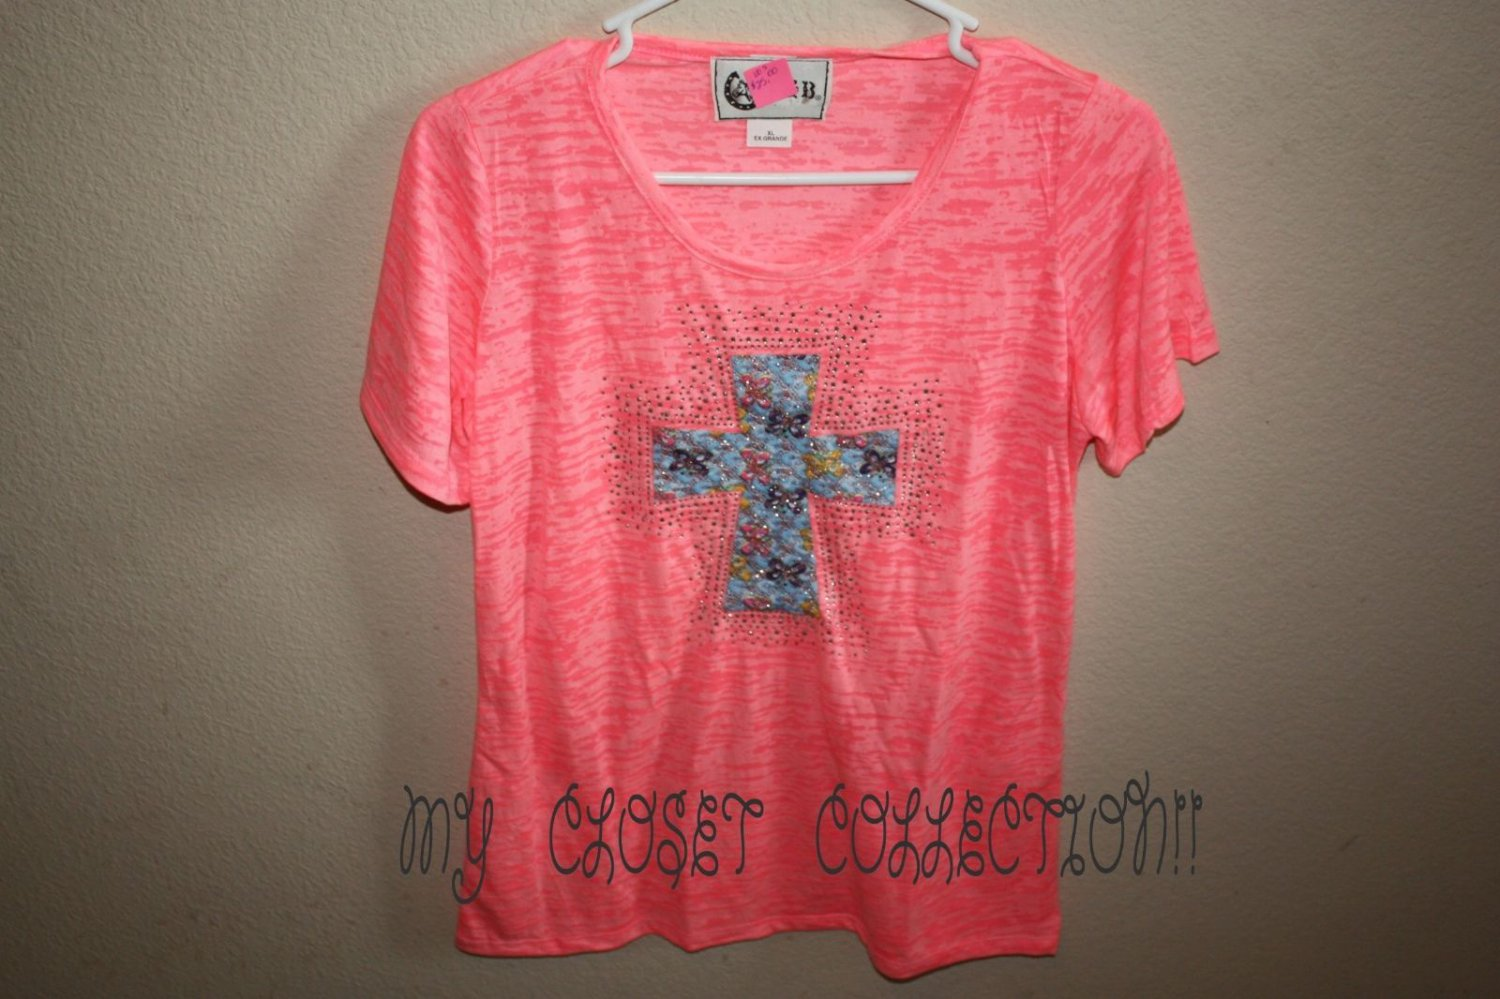 Pink Burn-Out T-shirt, Blinged-out Blue Lace Cross w Butterflies, Exclusive Design